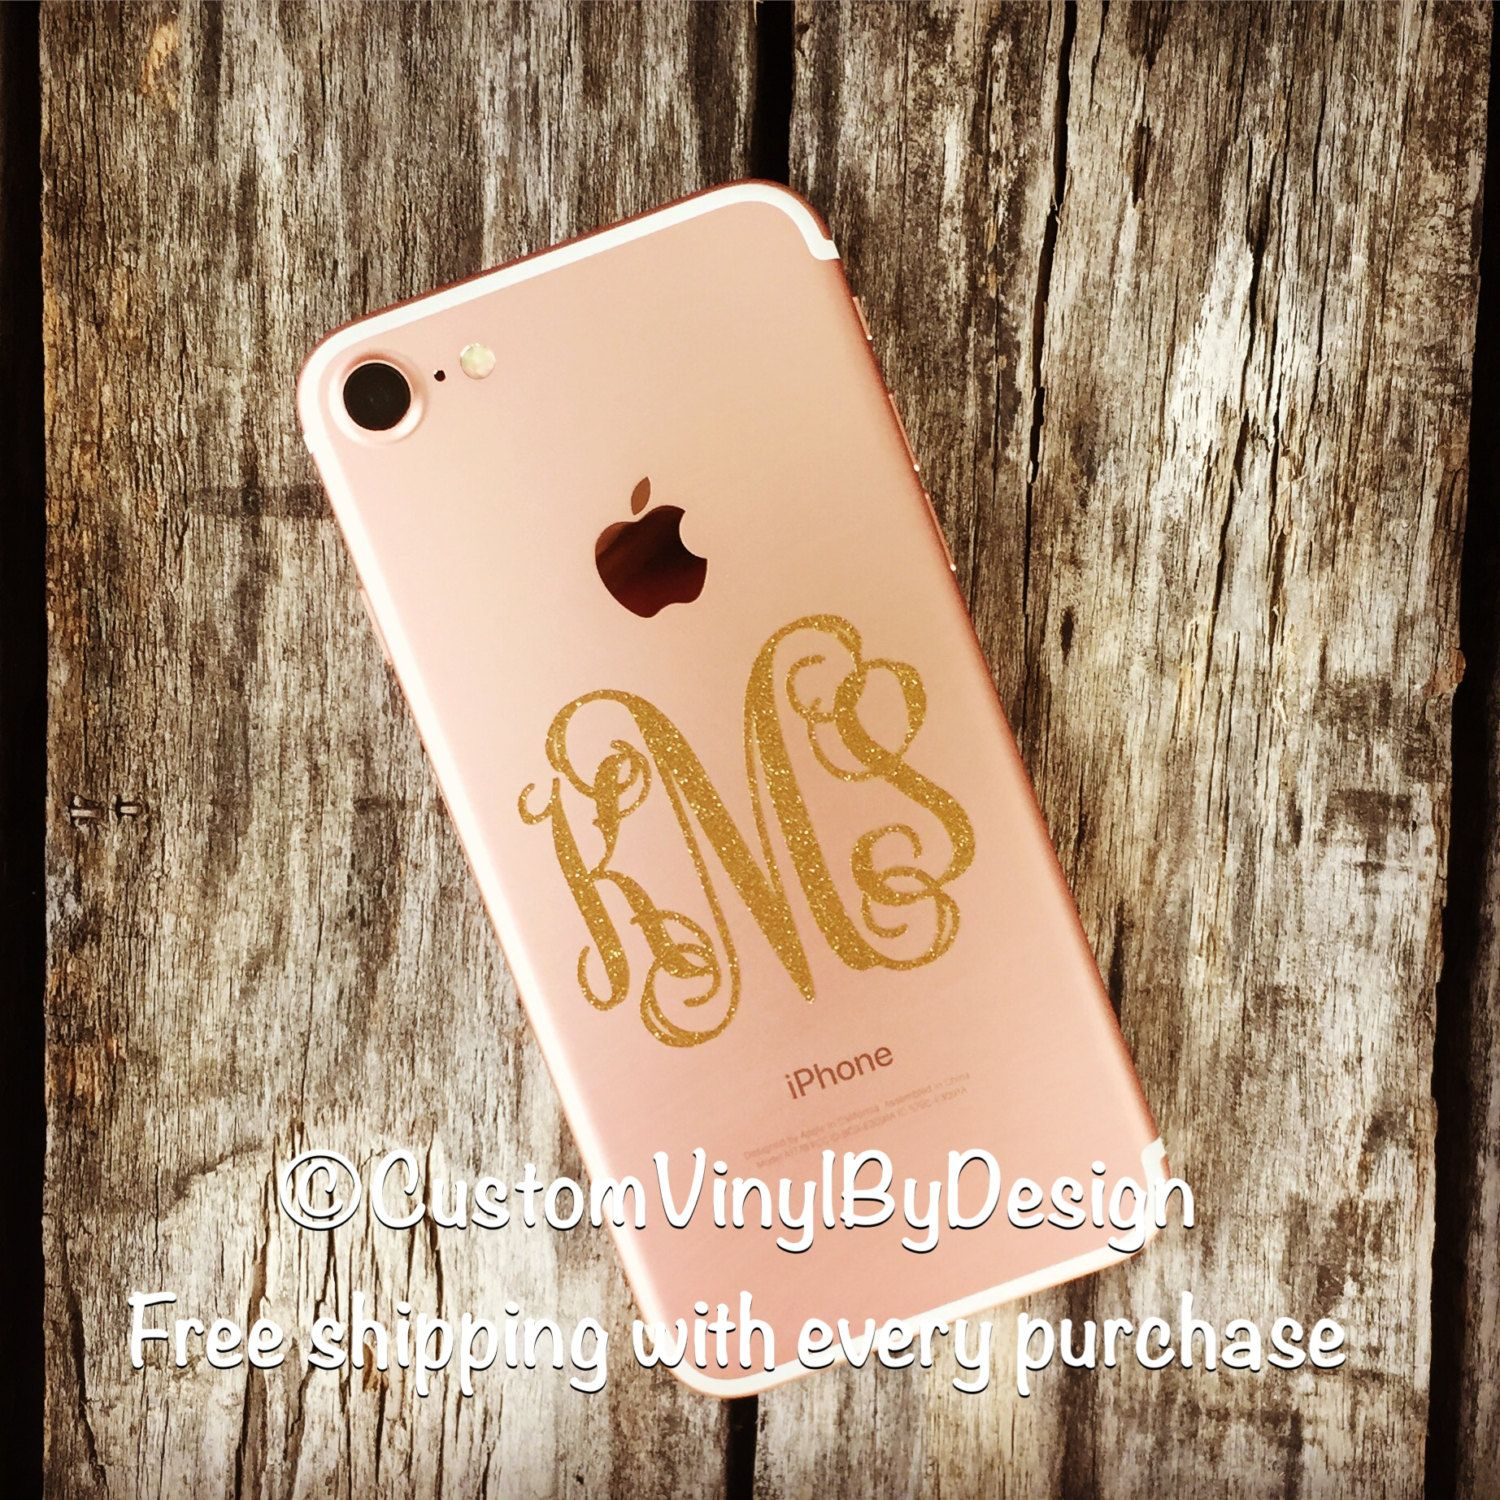 Ships Free IPhone IPhone Case Monogram IPhone Monogram - Vinyl decals for phone cases